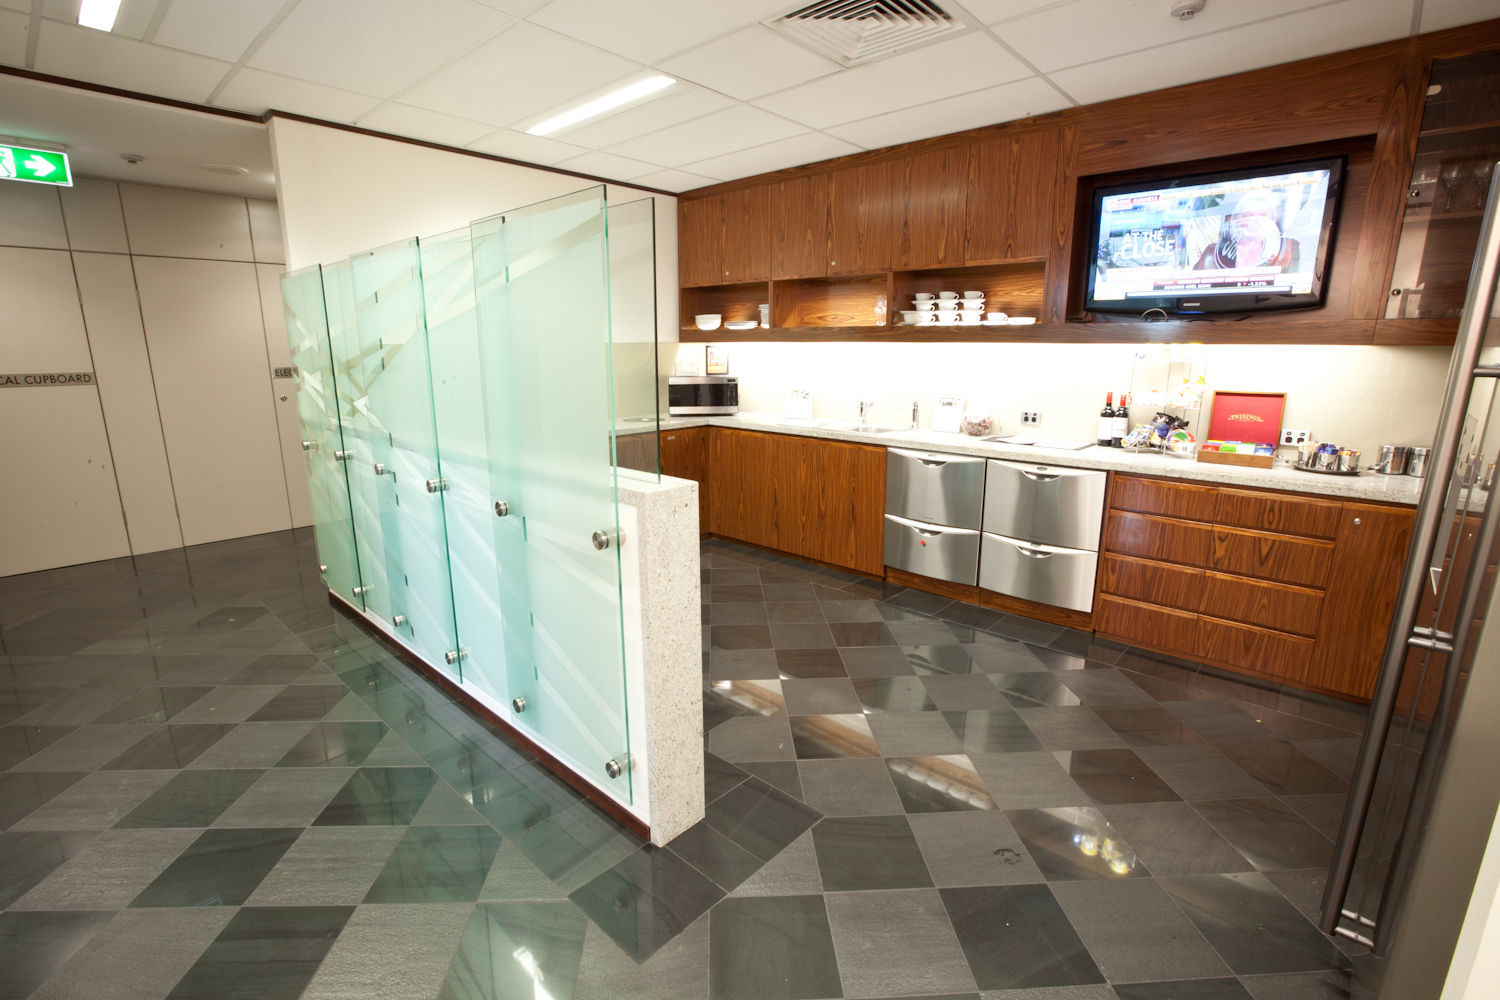 OFFICES AVAILABLE FOR 2-PERSON LOCATED IN BAULKHAM HILLS